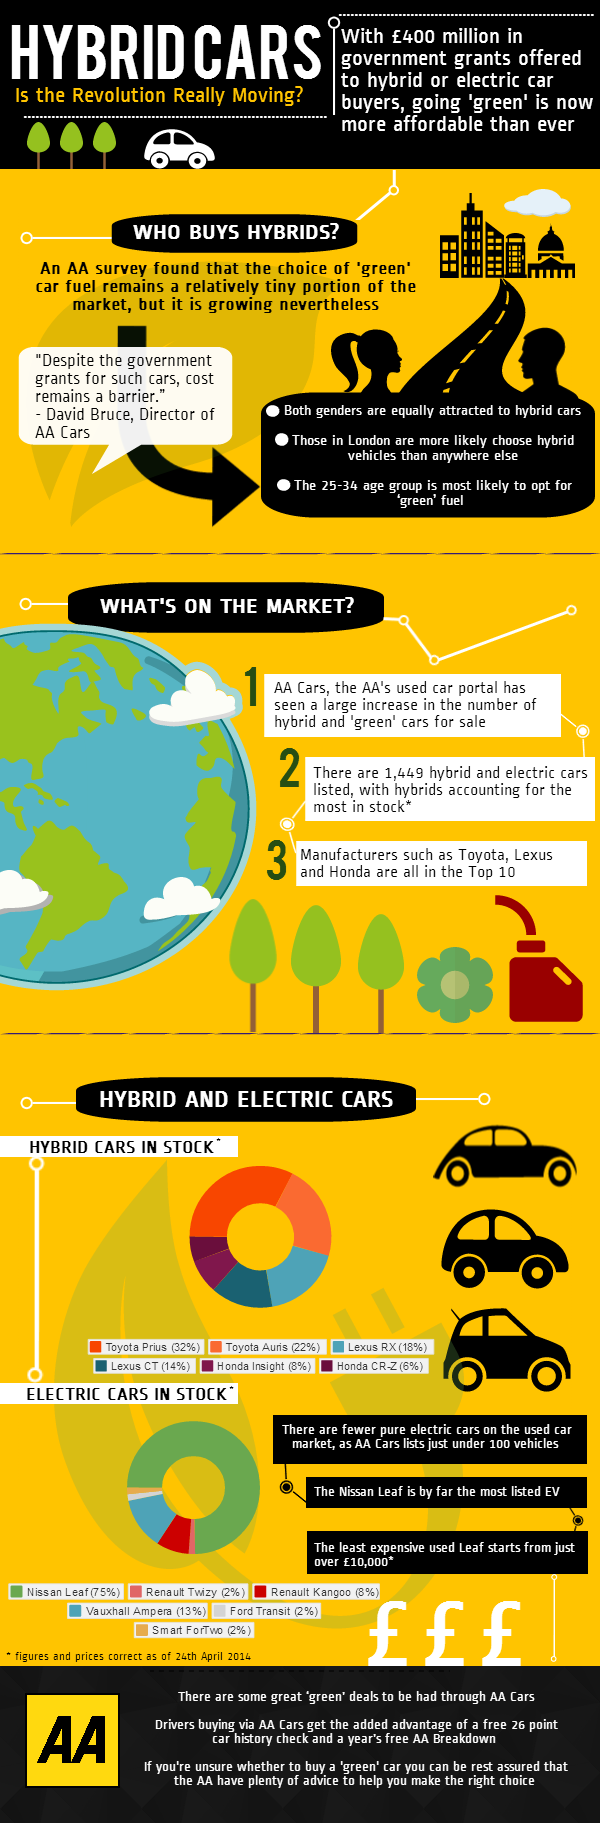 AA - Green Car Buying - Infographic V2